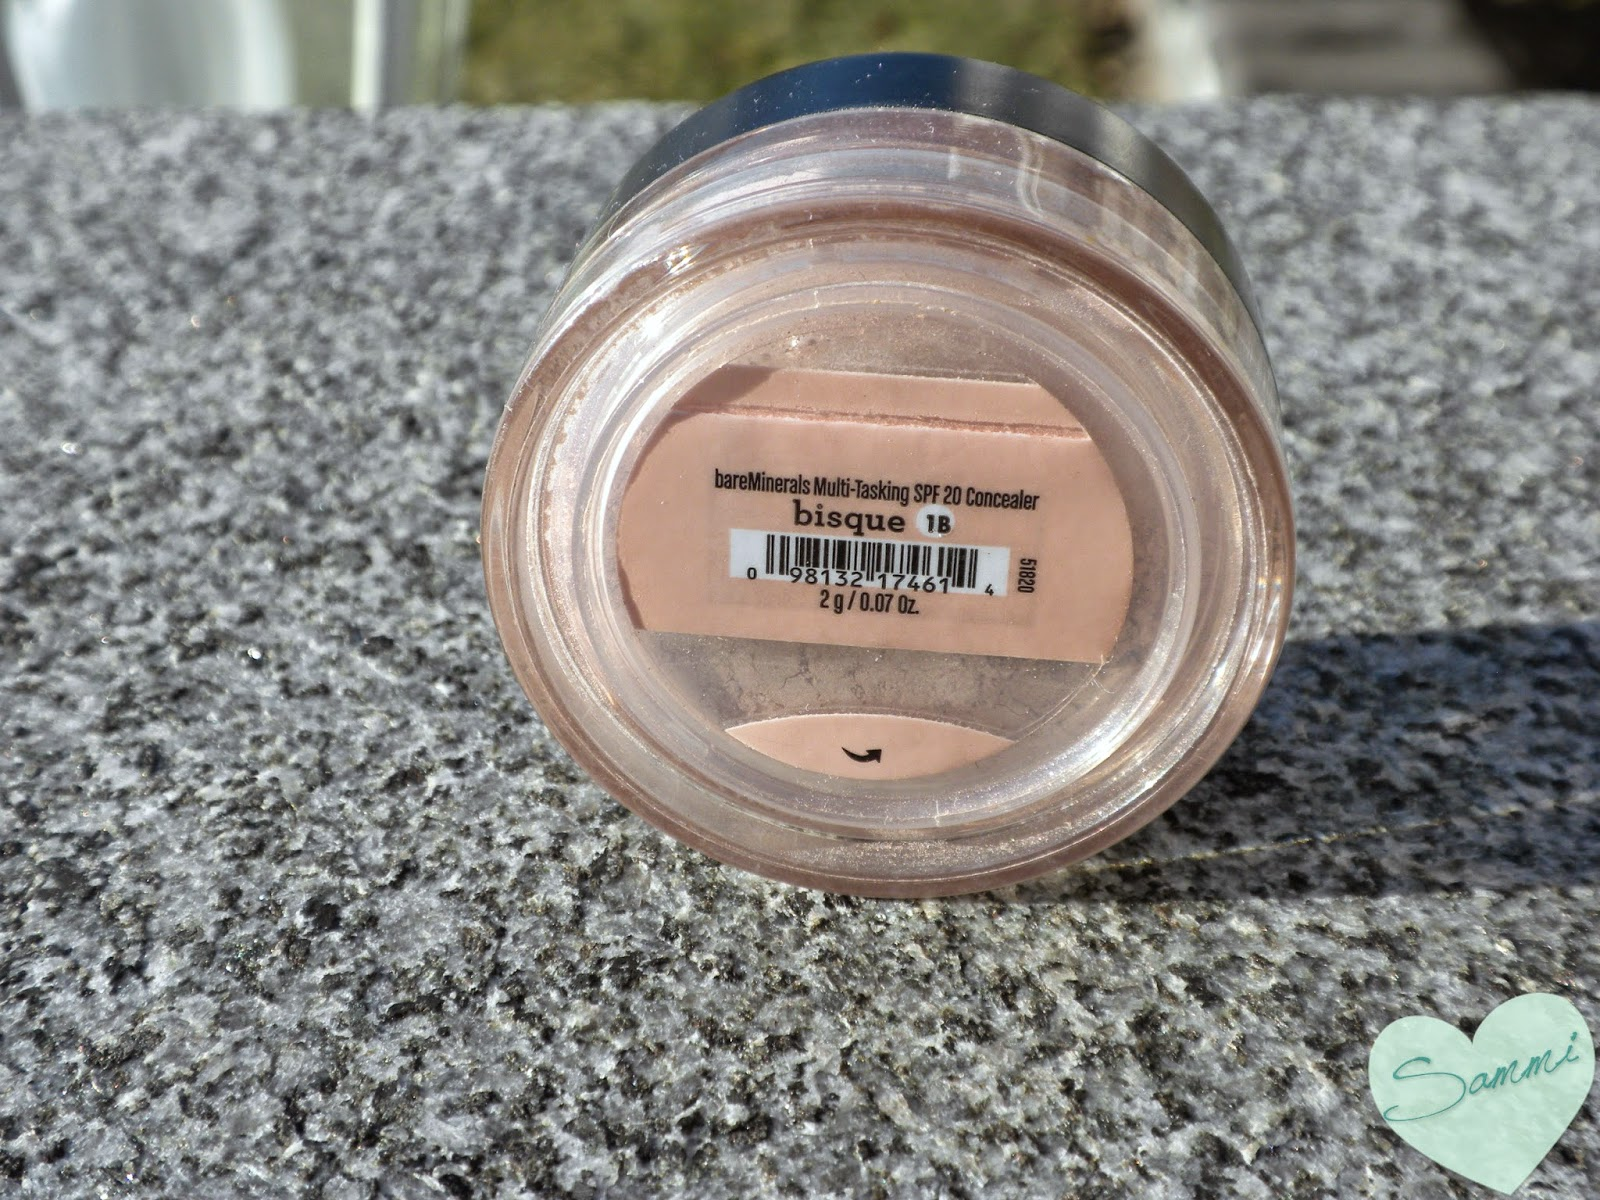 BARE MINERALS SPF 20 Concealer in Bisque